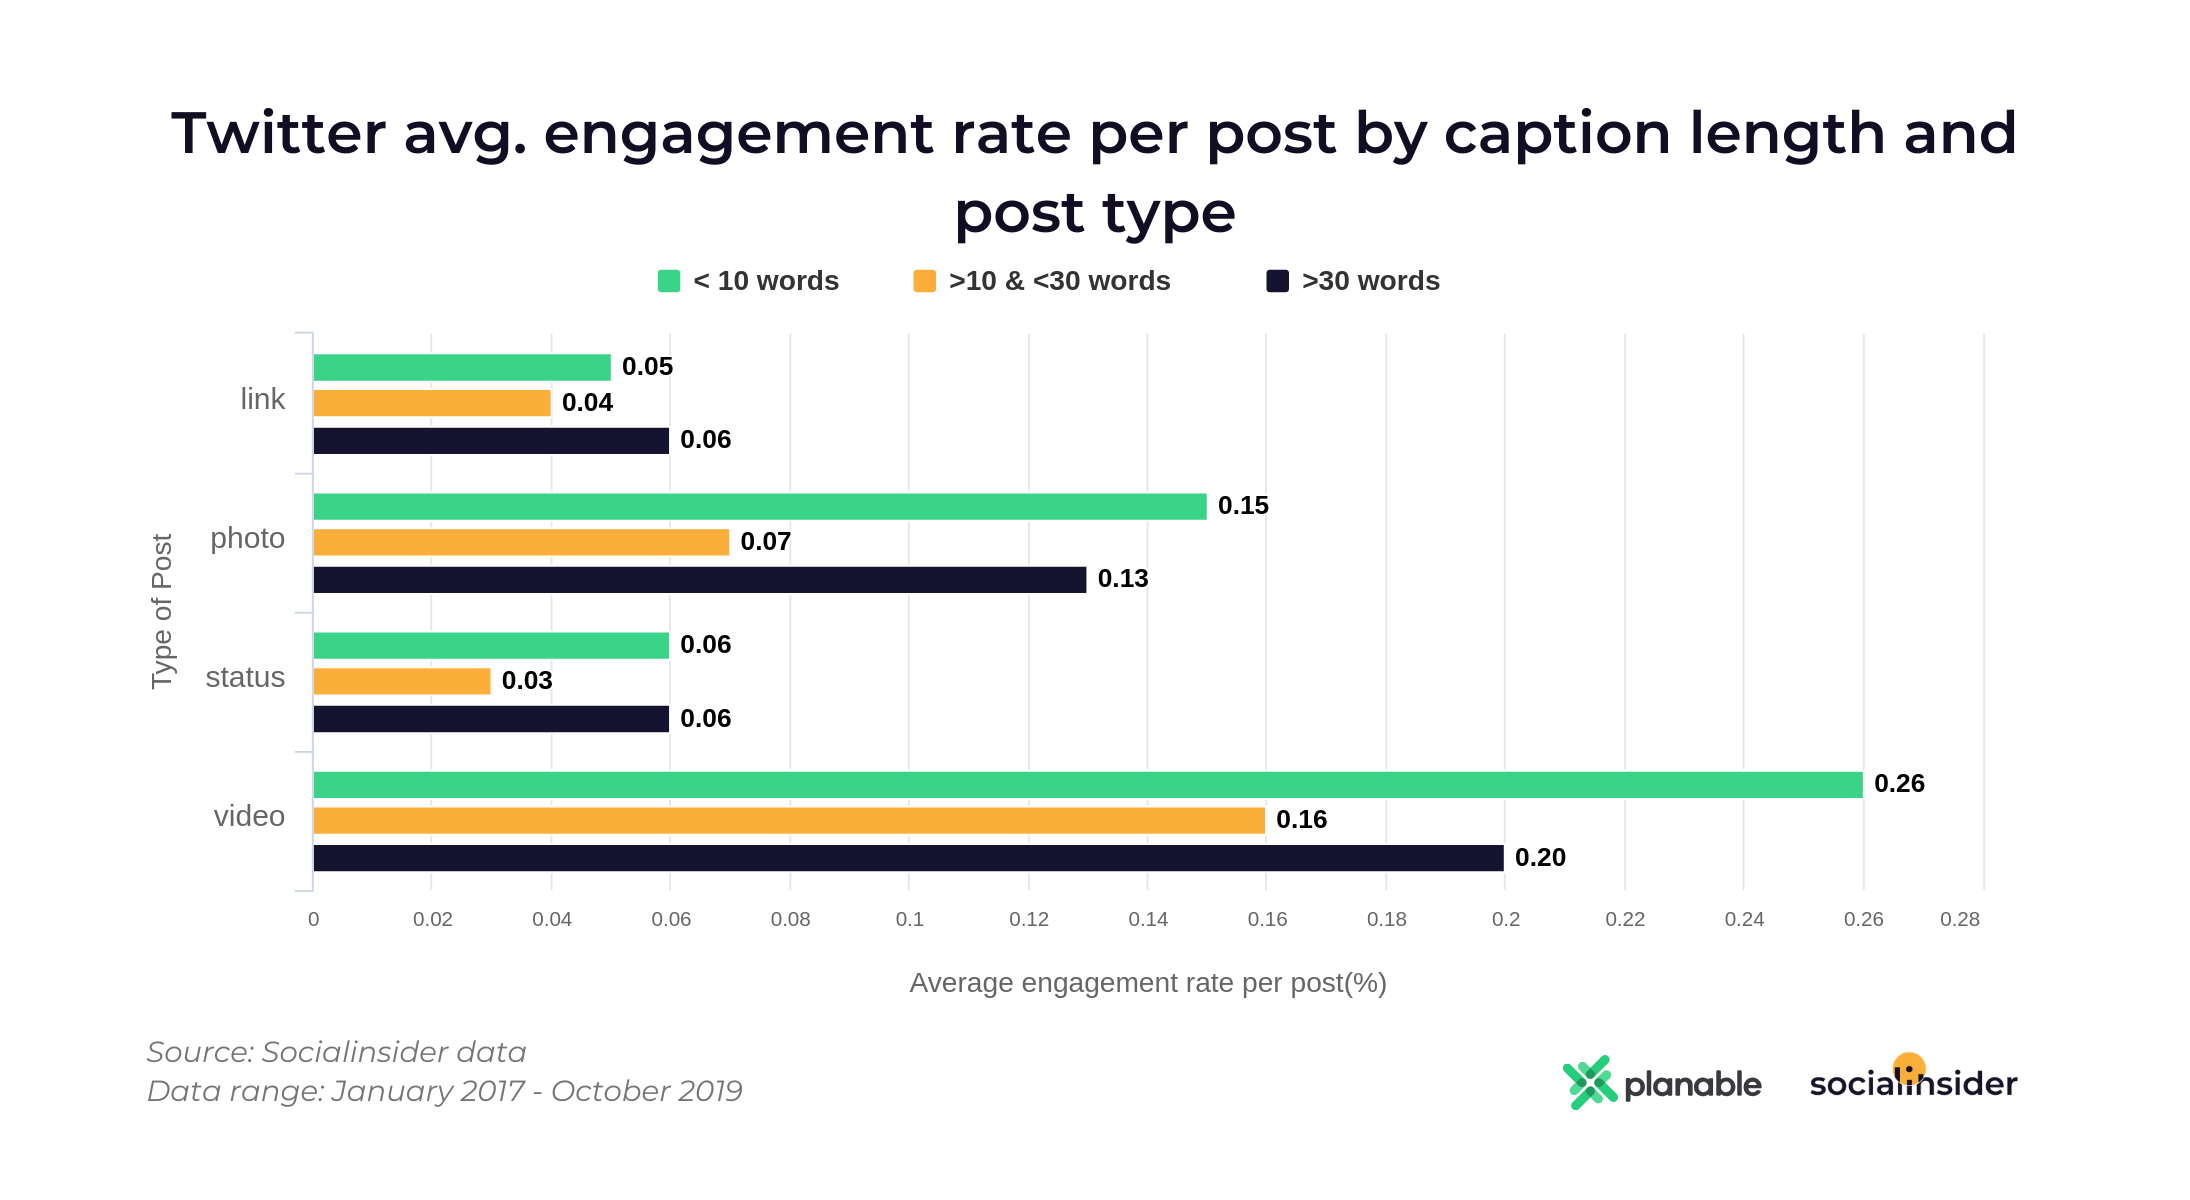 Twitter post engagement by length and type